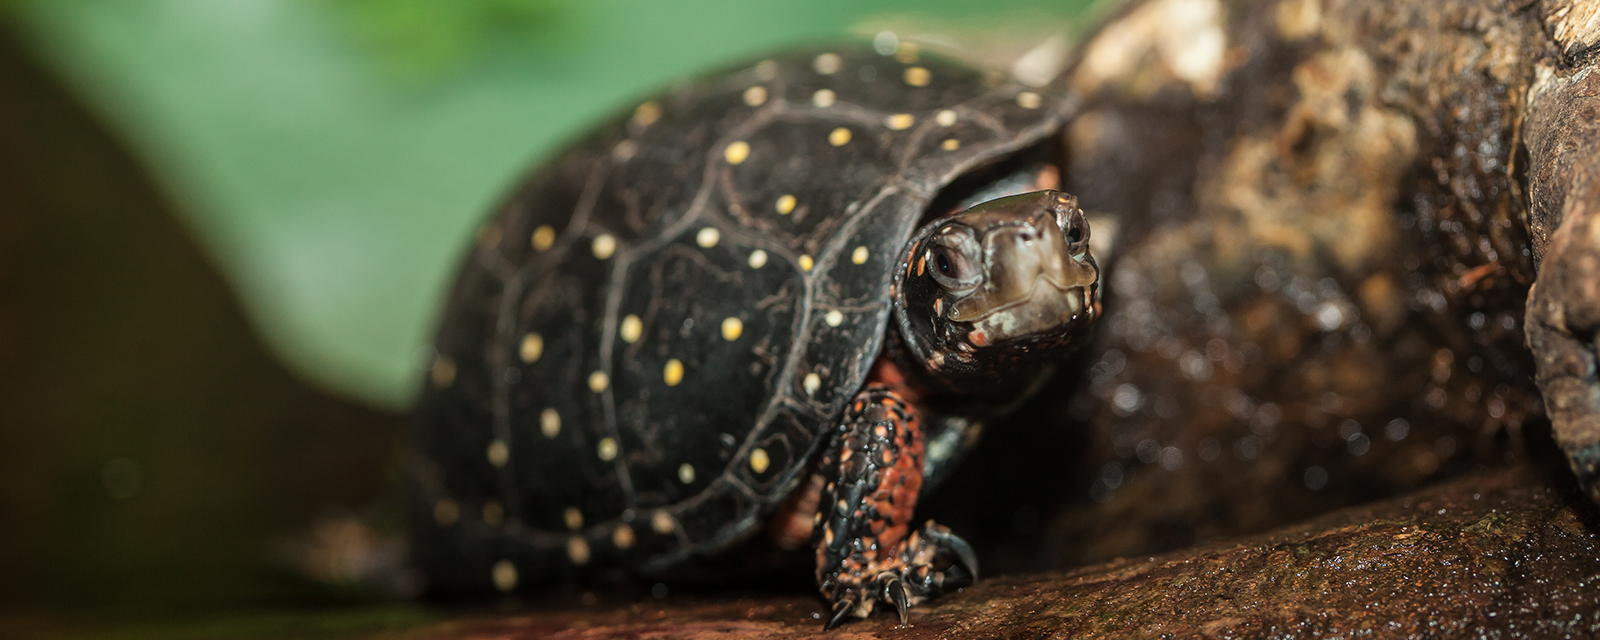 Spotted turtle in exhibit